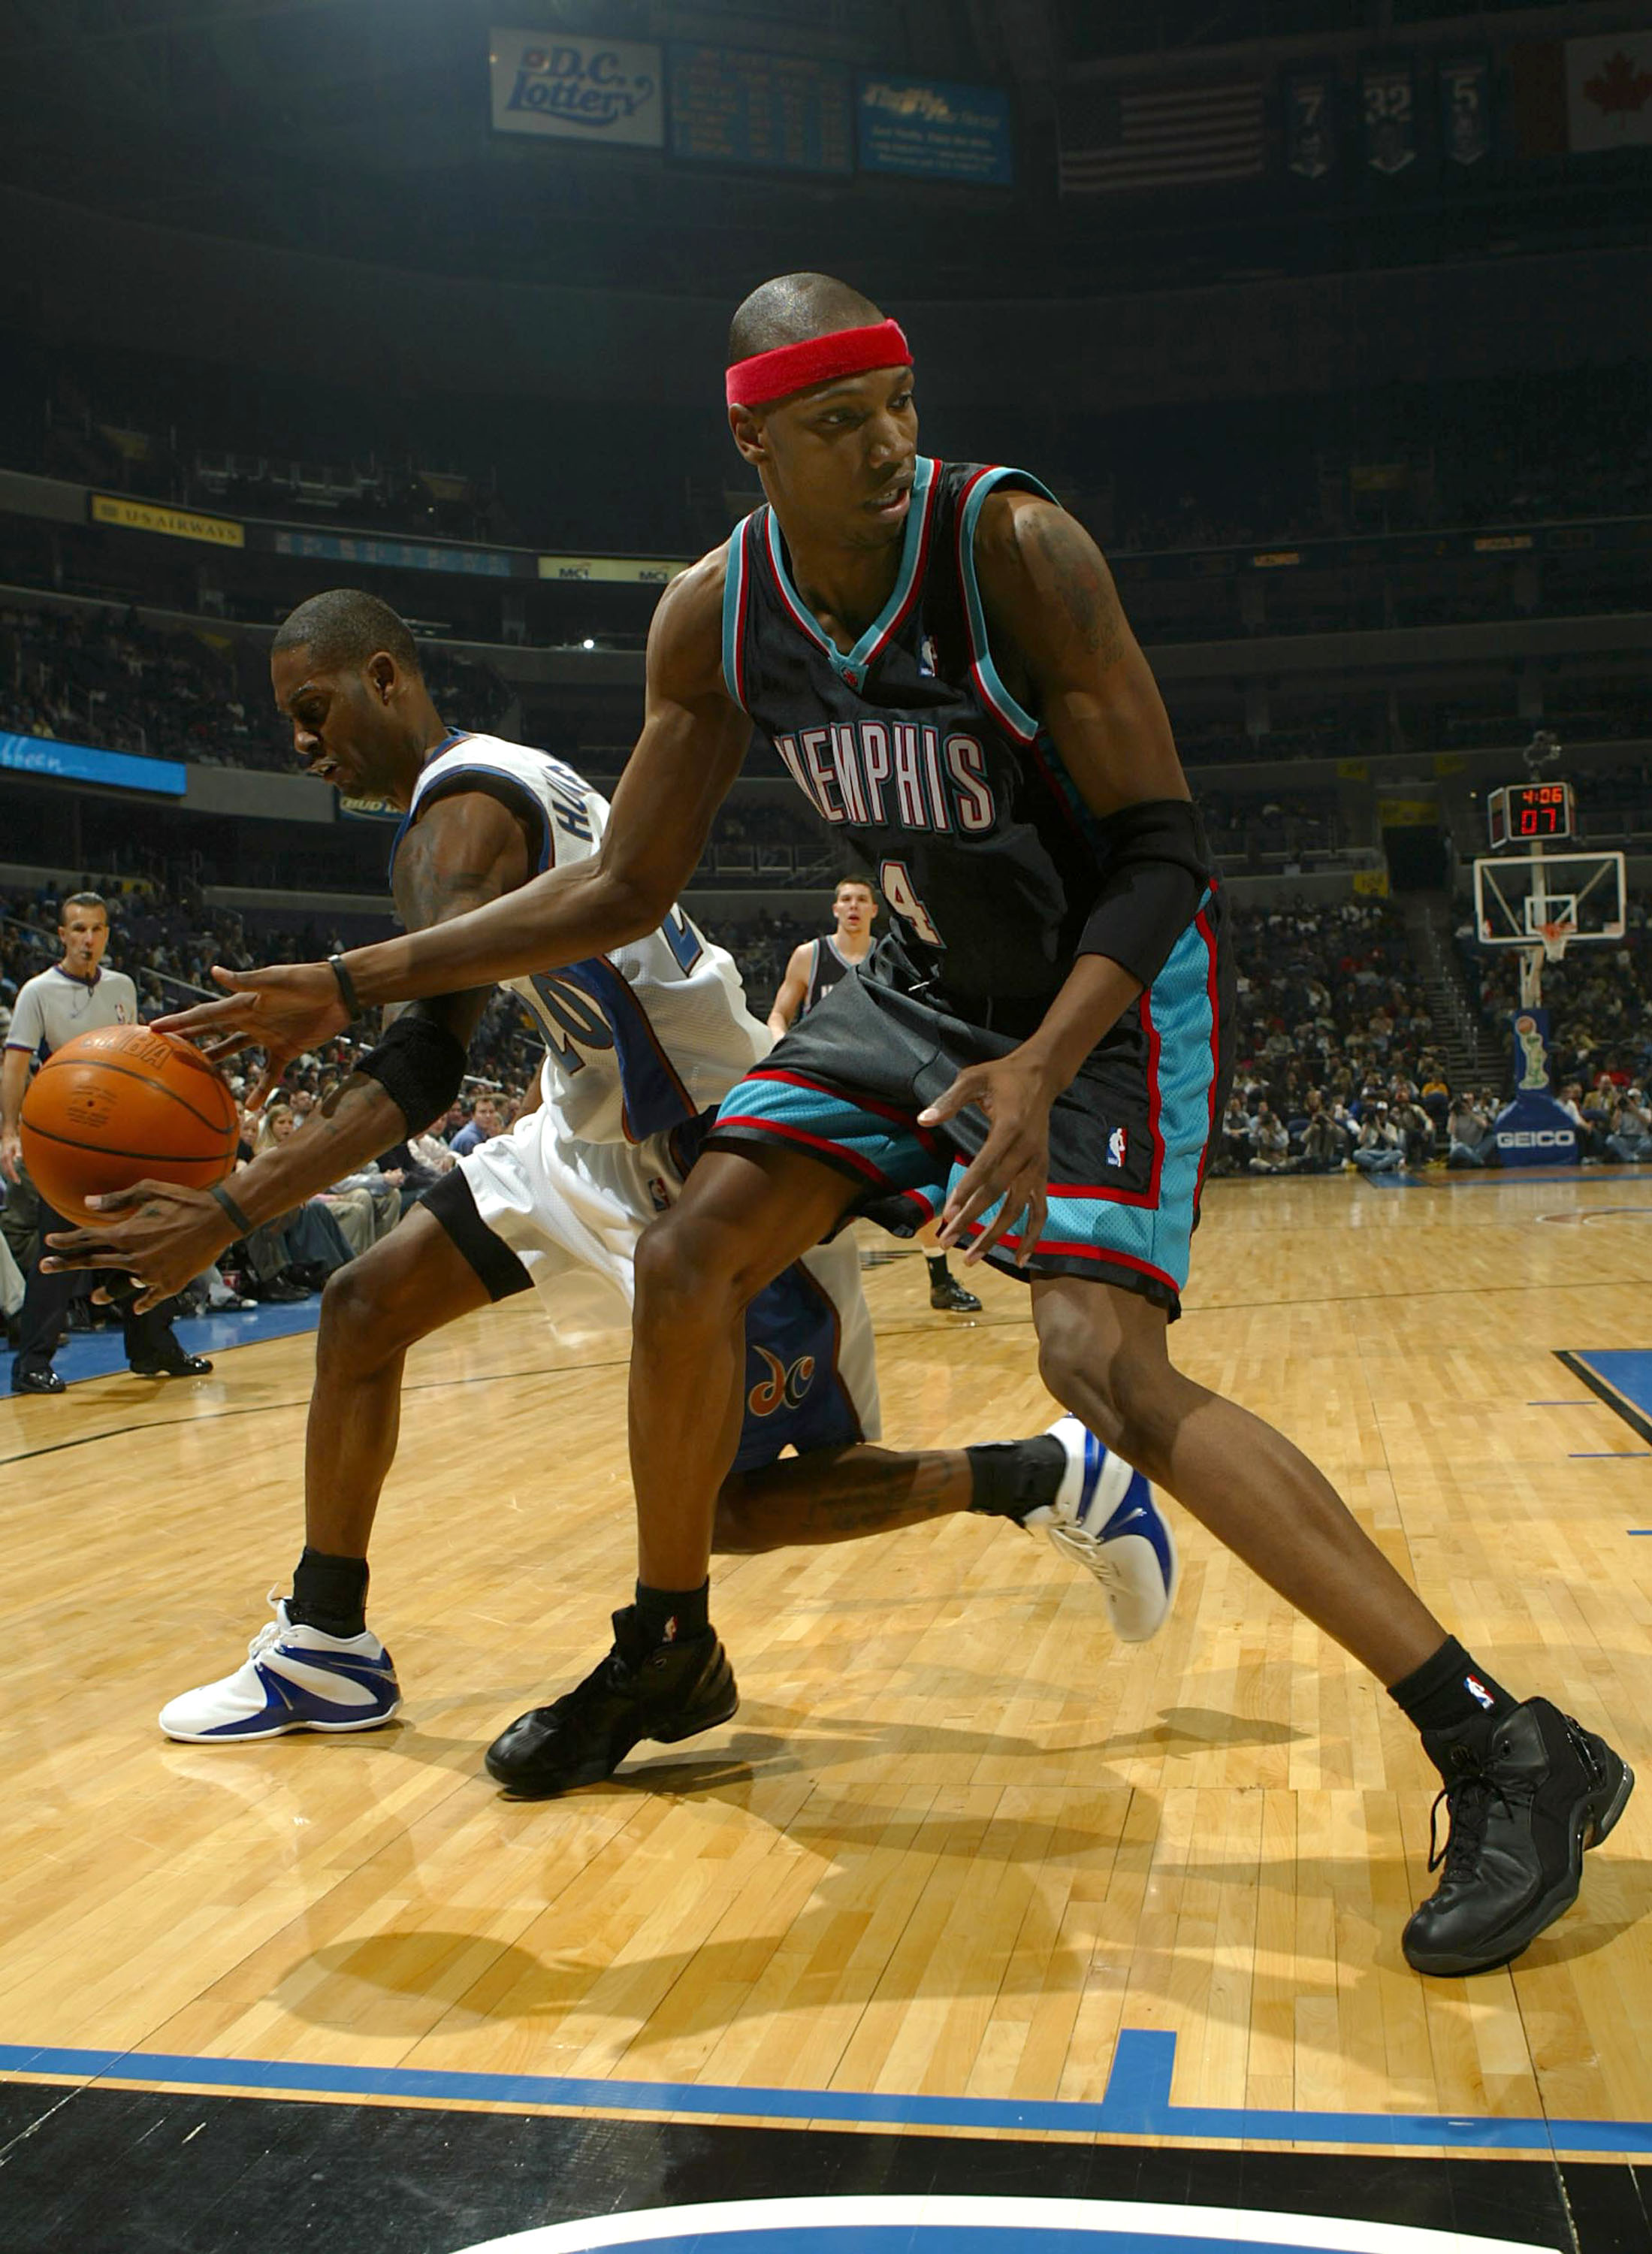 WASHINGTON - FEBRUARY 4:  Stromile Swift #4 of the Memphis Grizzlies has the ball stolen from him by Larry Hughes #20 of the Washington Wizards during NBA action on February 4, 2004 at the MCI Center in Washington D.C. (Photo by Doug Pensinger/Getty Image